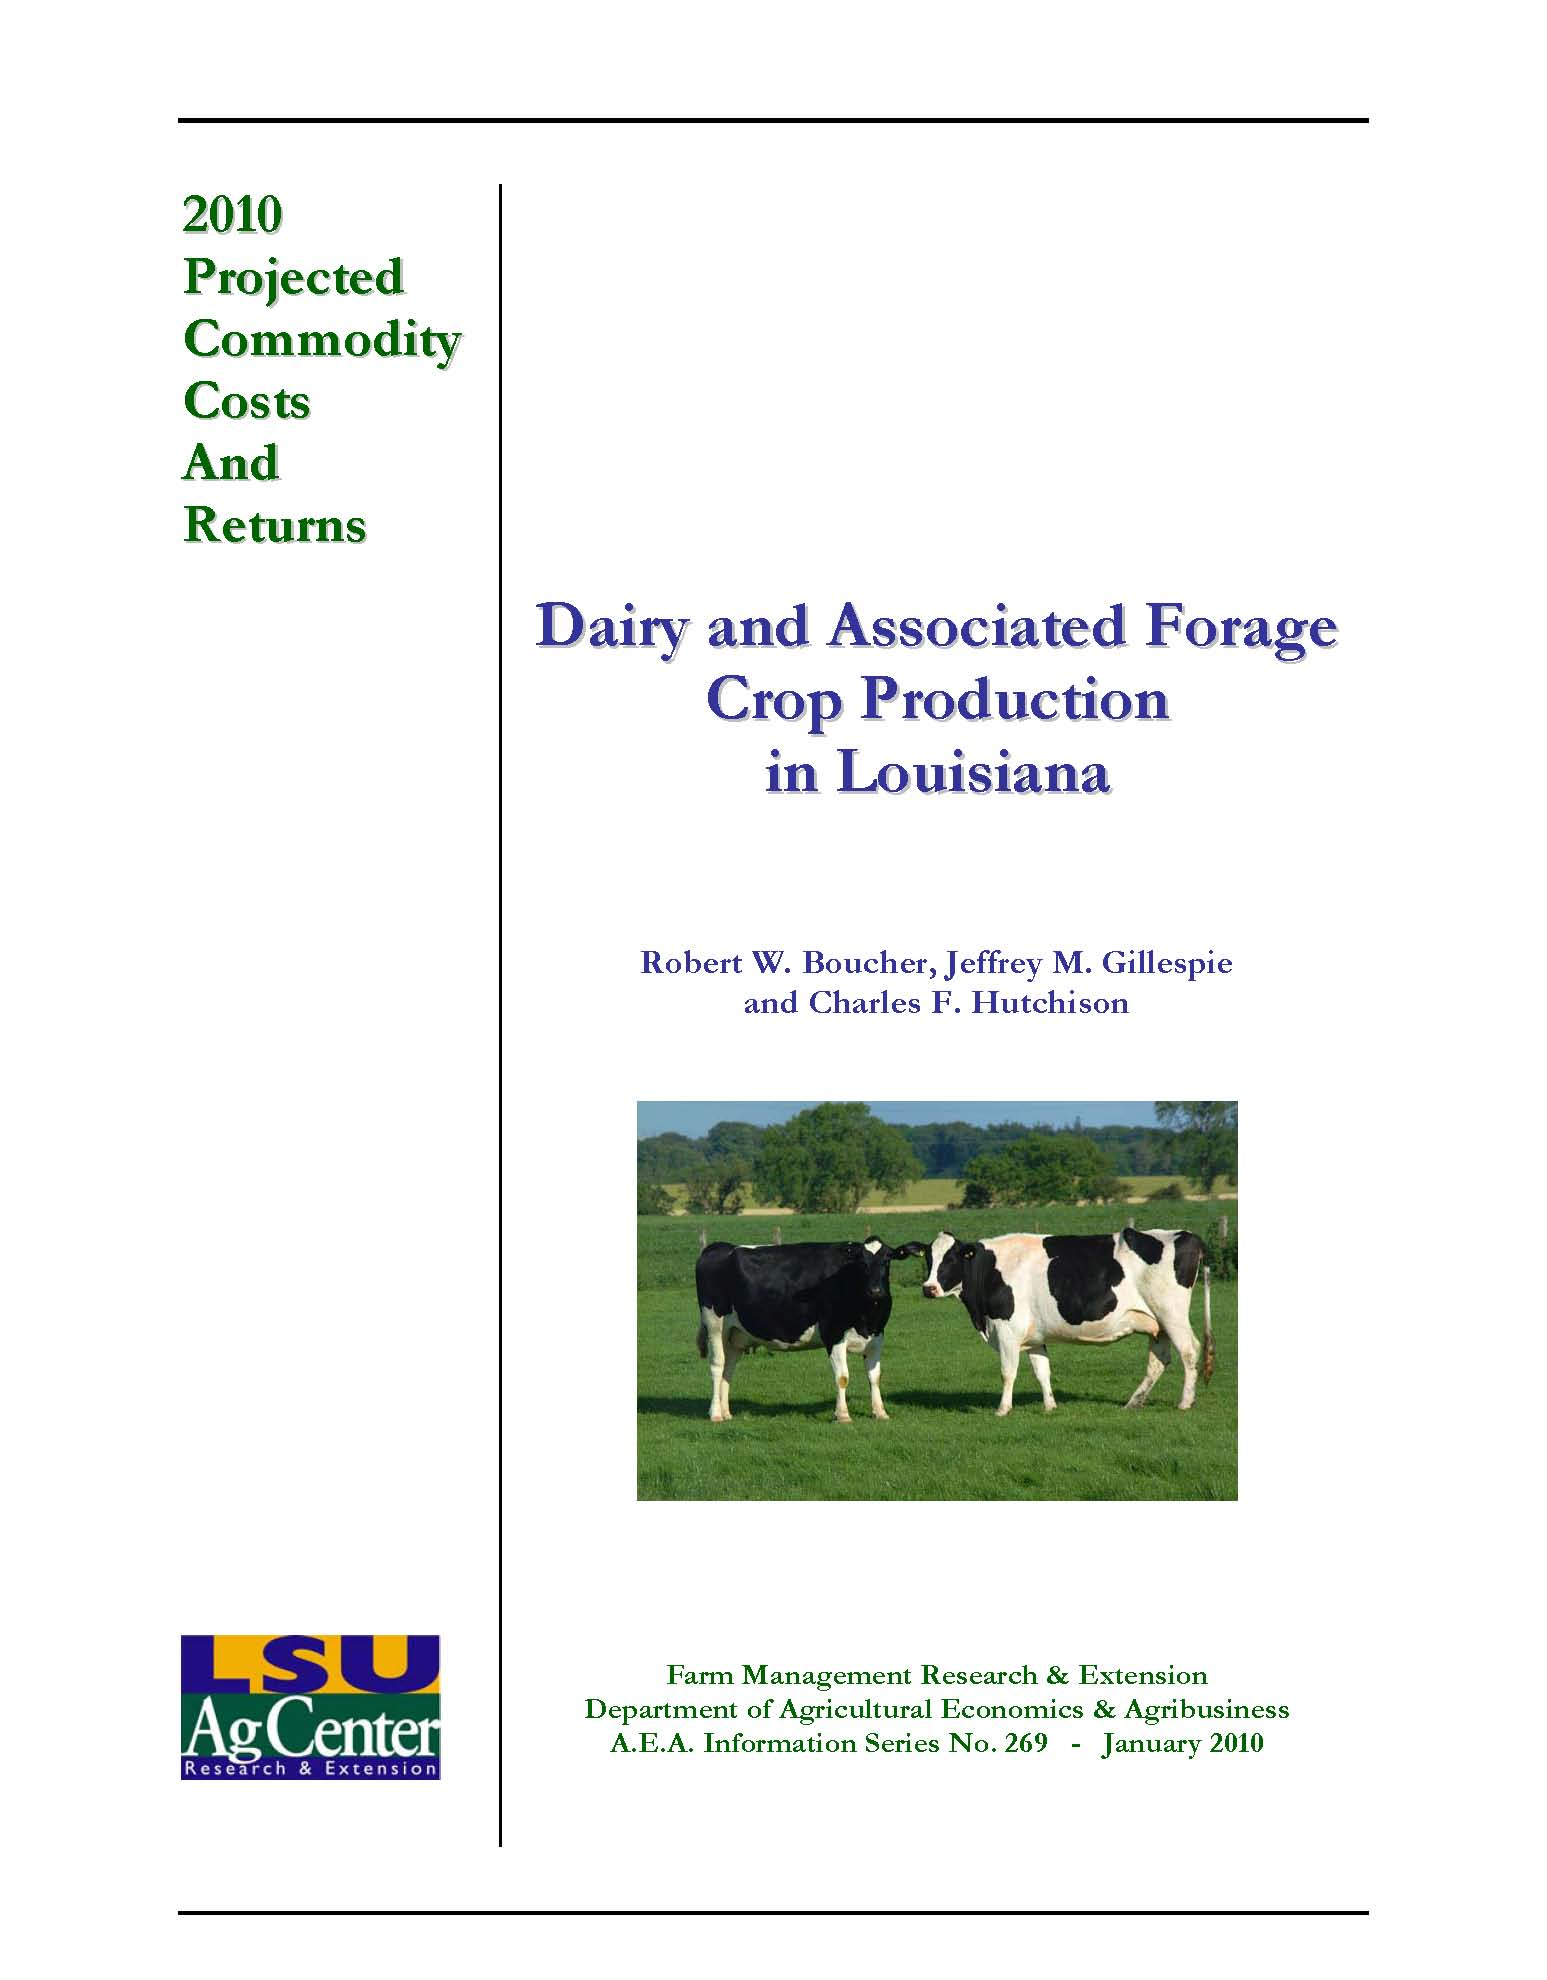 Projected Costs and Returns for Dairy and Associated Forage Crop Production in Louisiana 2010